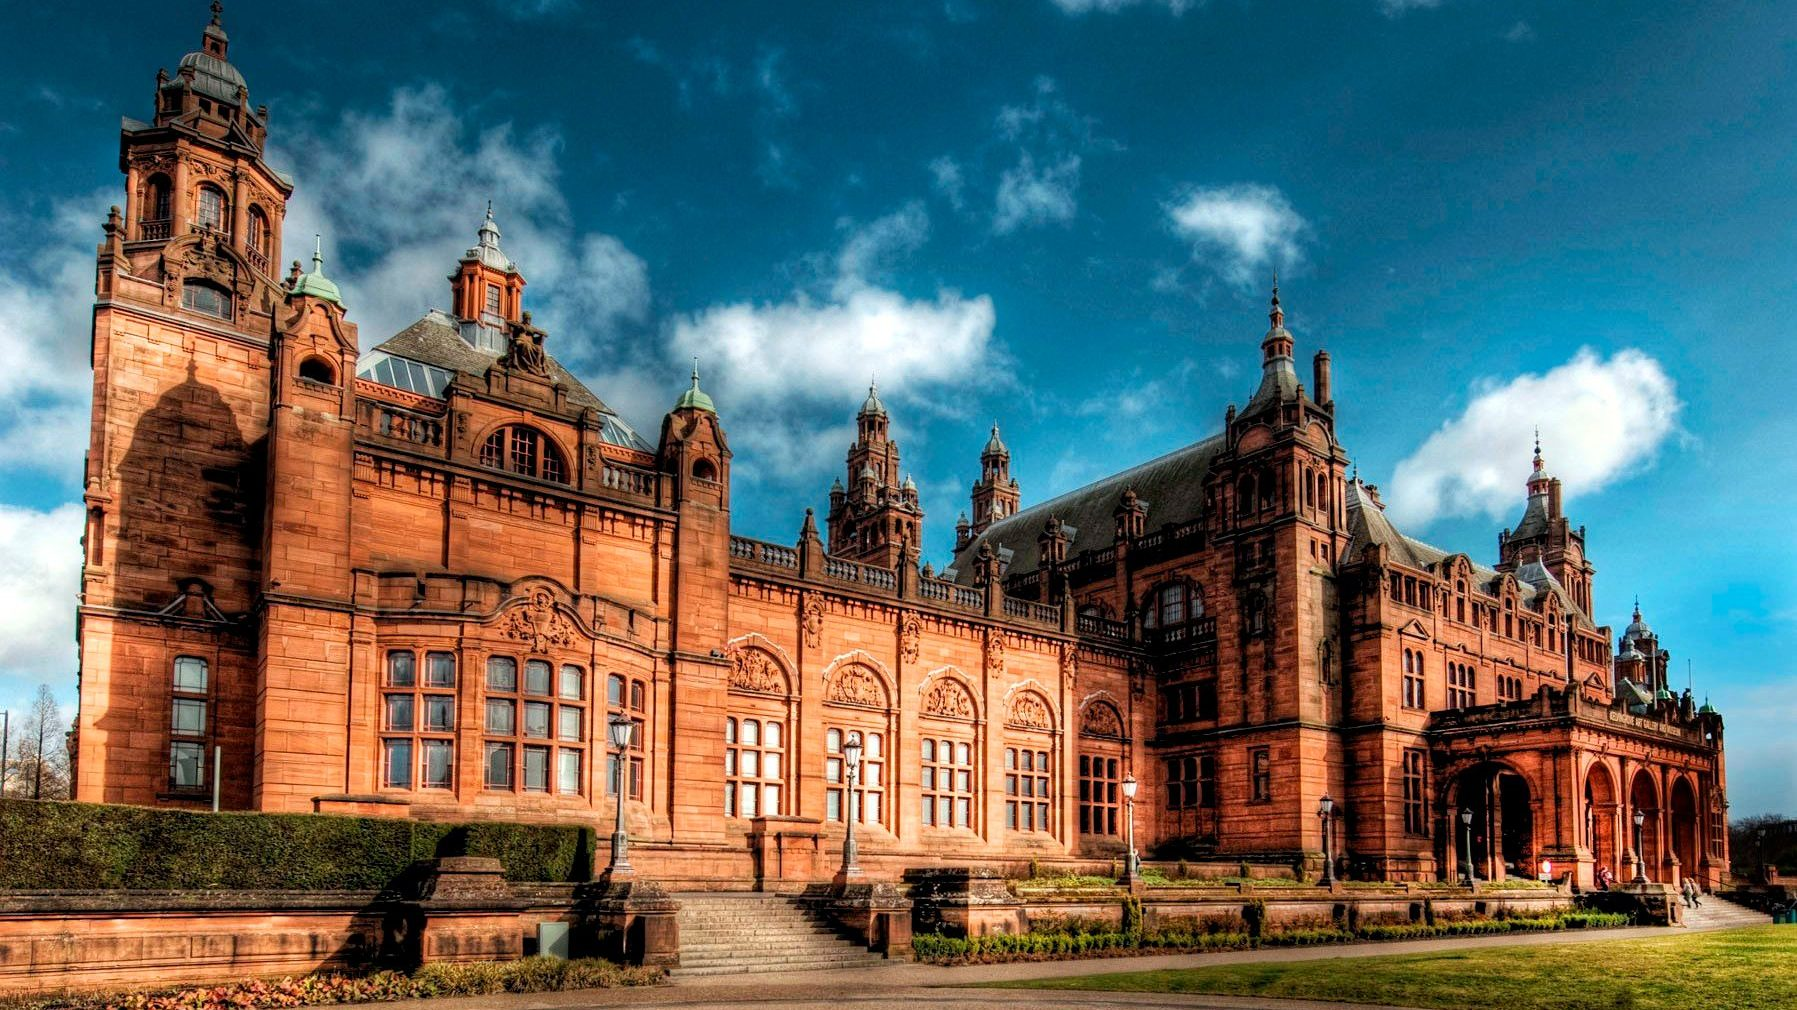 Kelvingrove Museum in Glasgow. Public buildings including museums will be allowed to open from 26 April